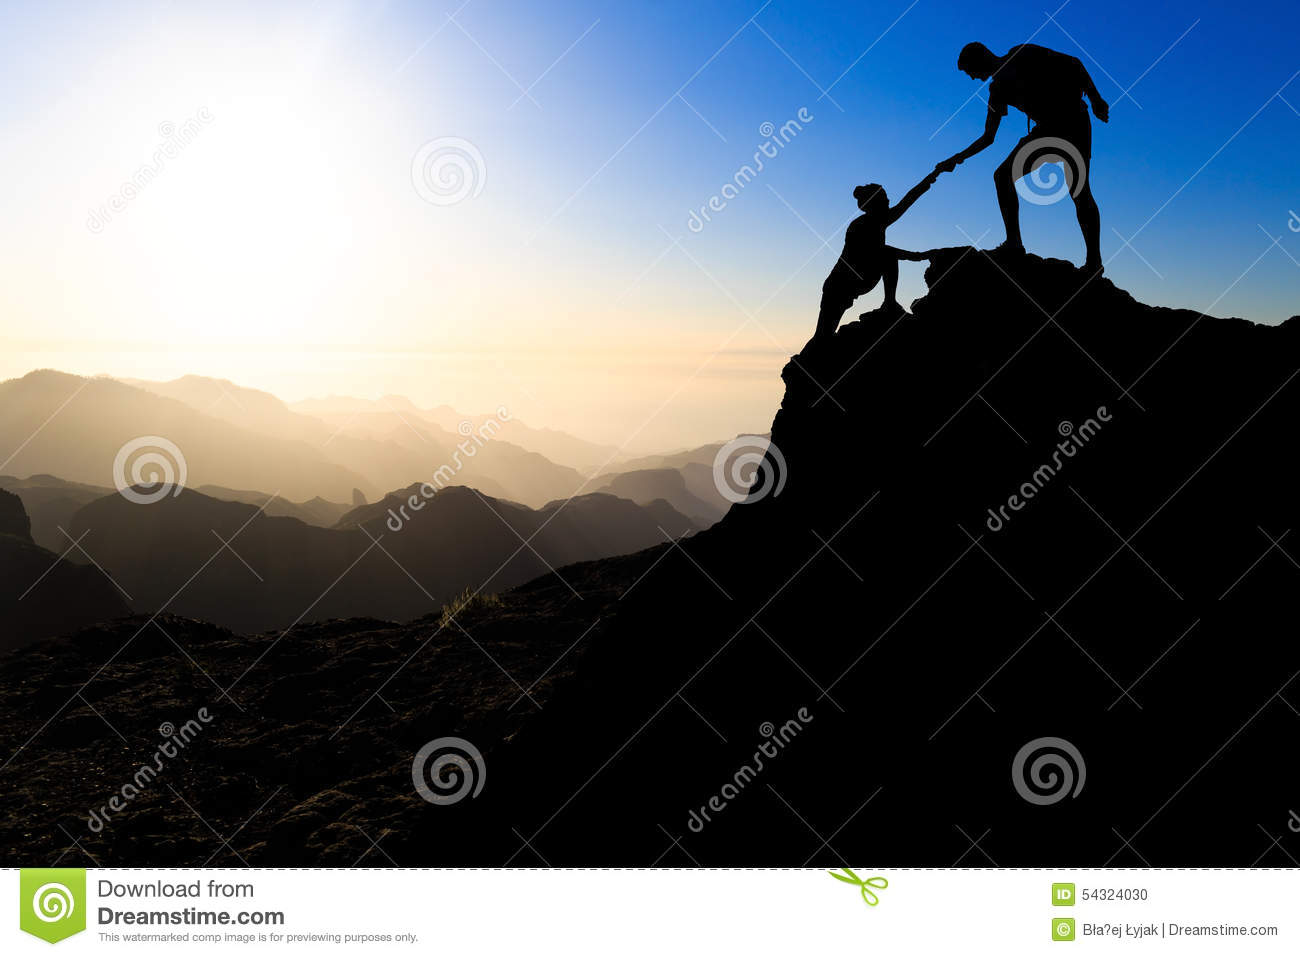 Download Teamwork Couple Hiking Helping Hand Stock Photo - Image of climbing, backlit: 54324030